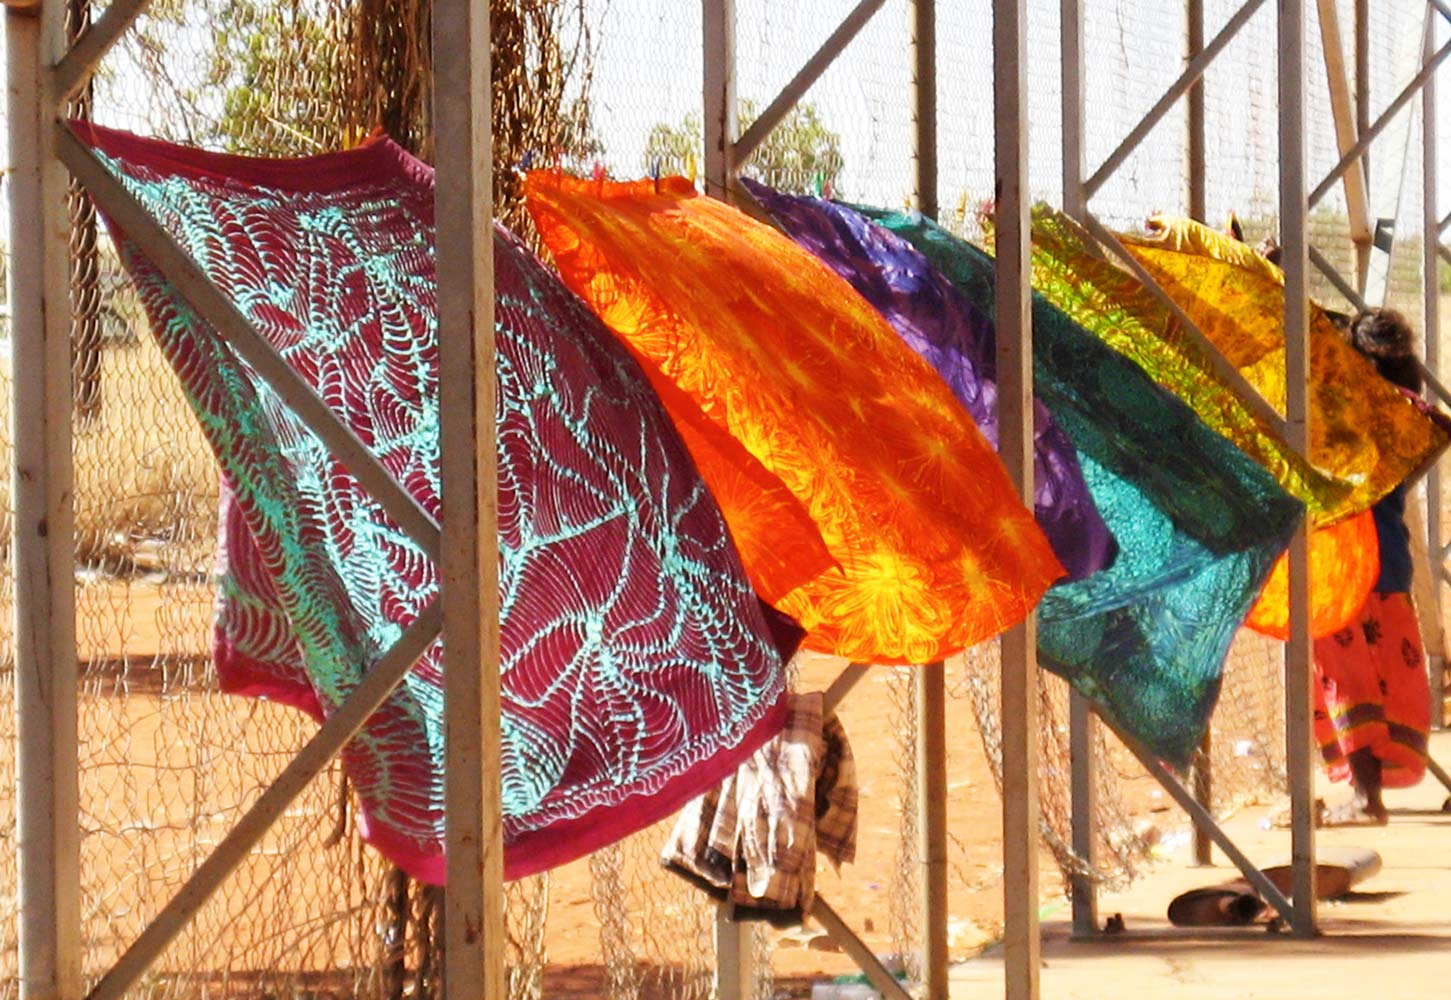 Batiks blowing in the breeze, Utopia Batik Revival Workshop, 2007.  Photo: Julia Murray